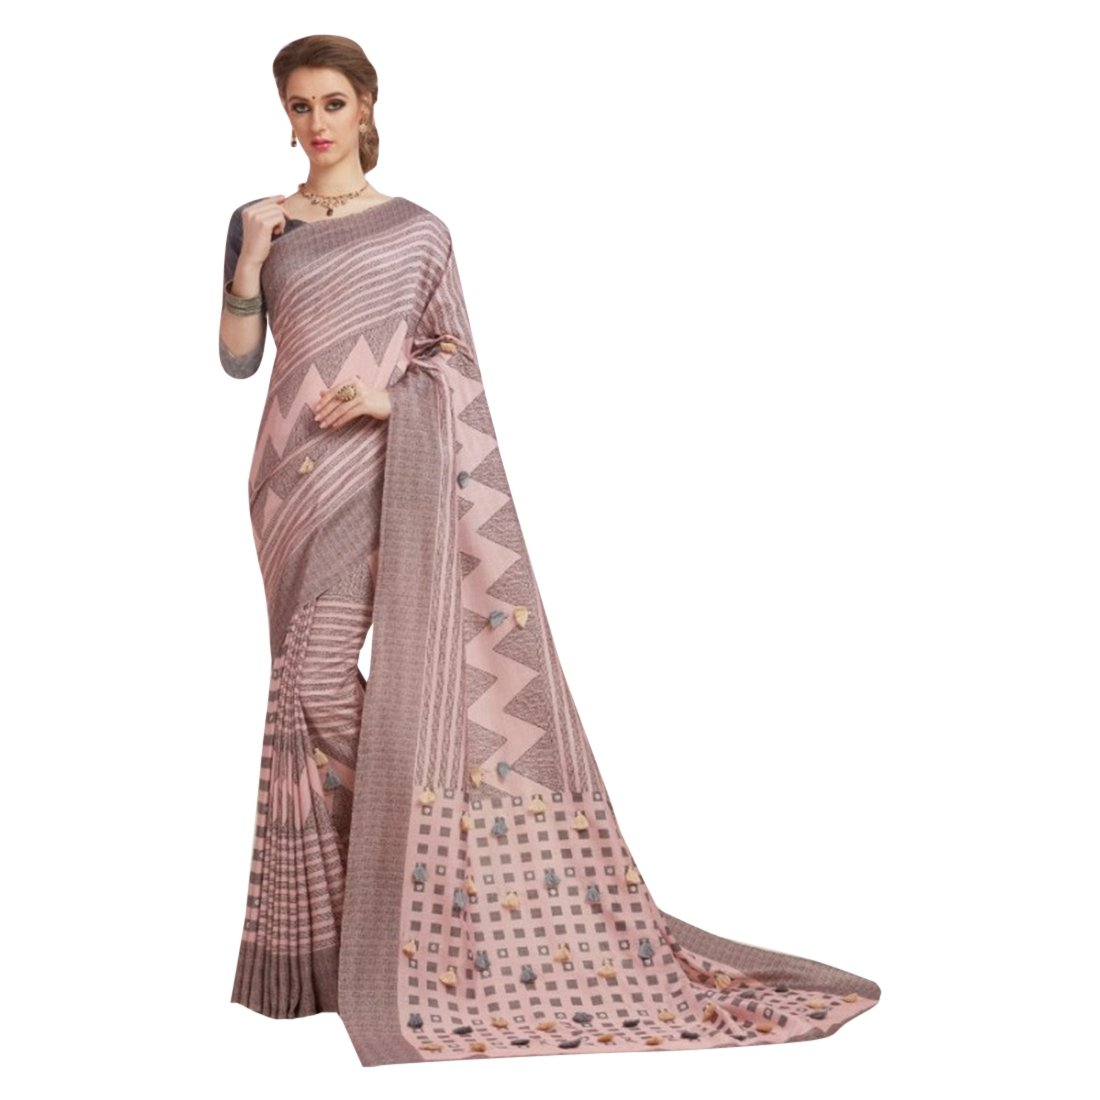 Cotton Silk Indian Bollywood Designer Saree Sari Wedding Ethnic Blouse Ceremony Formal 896